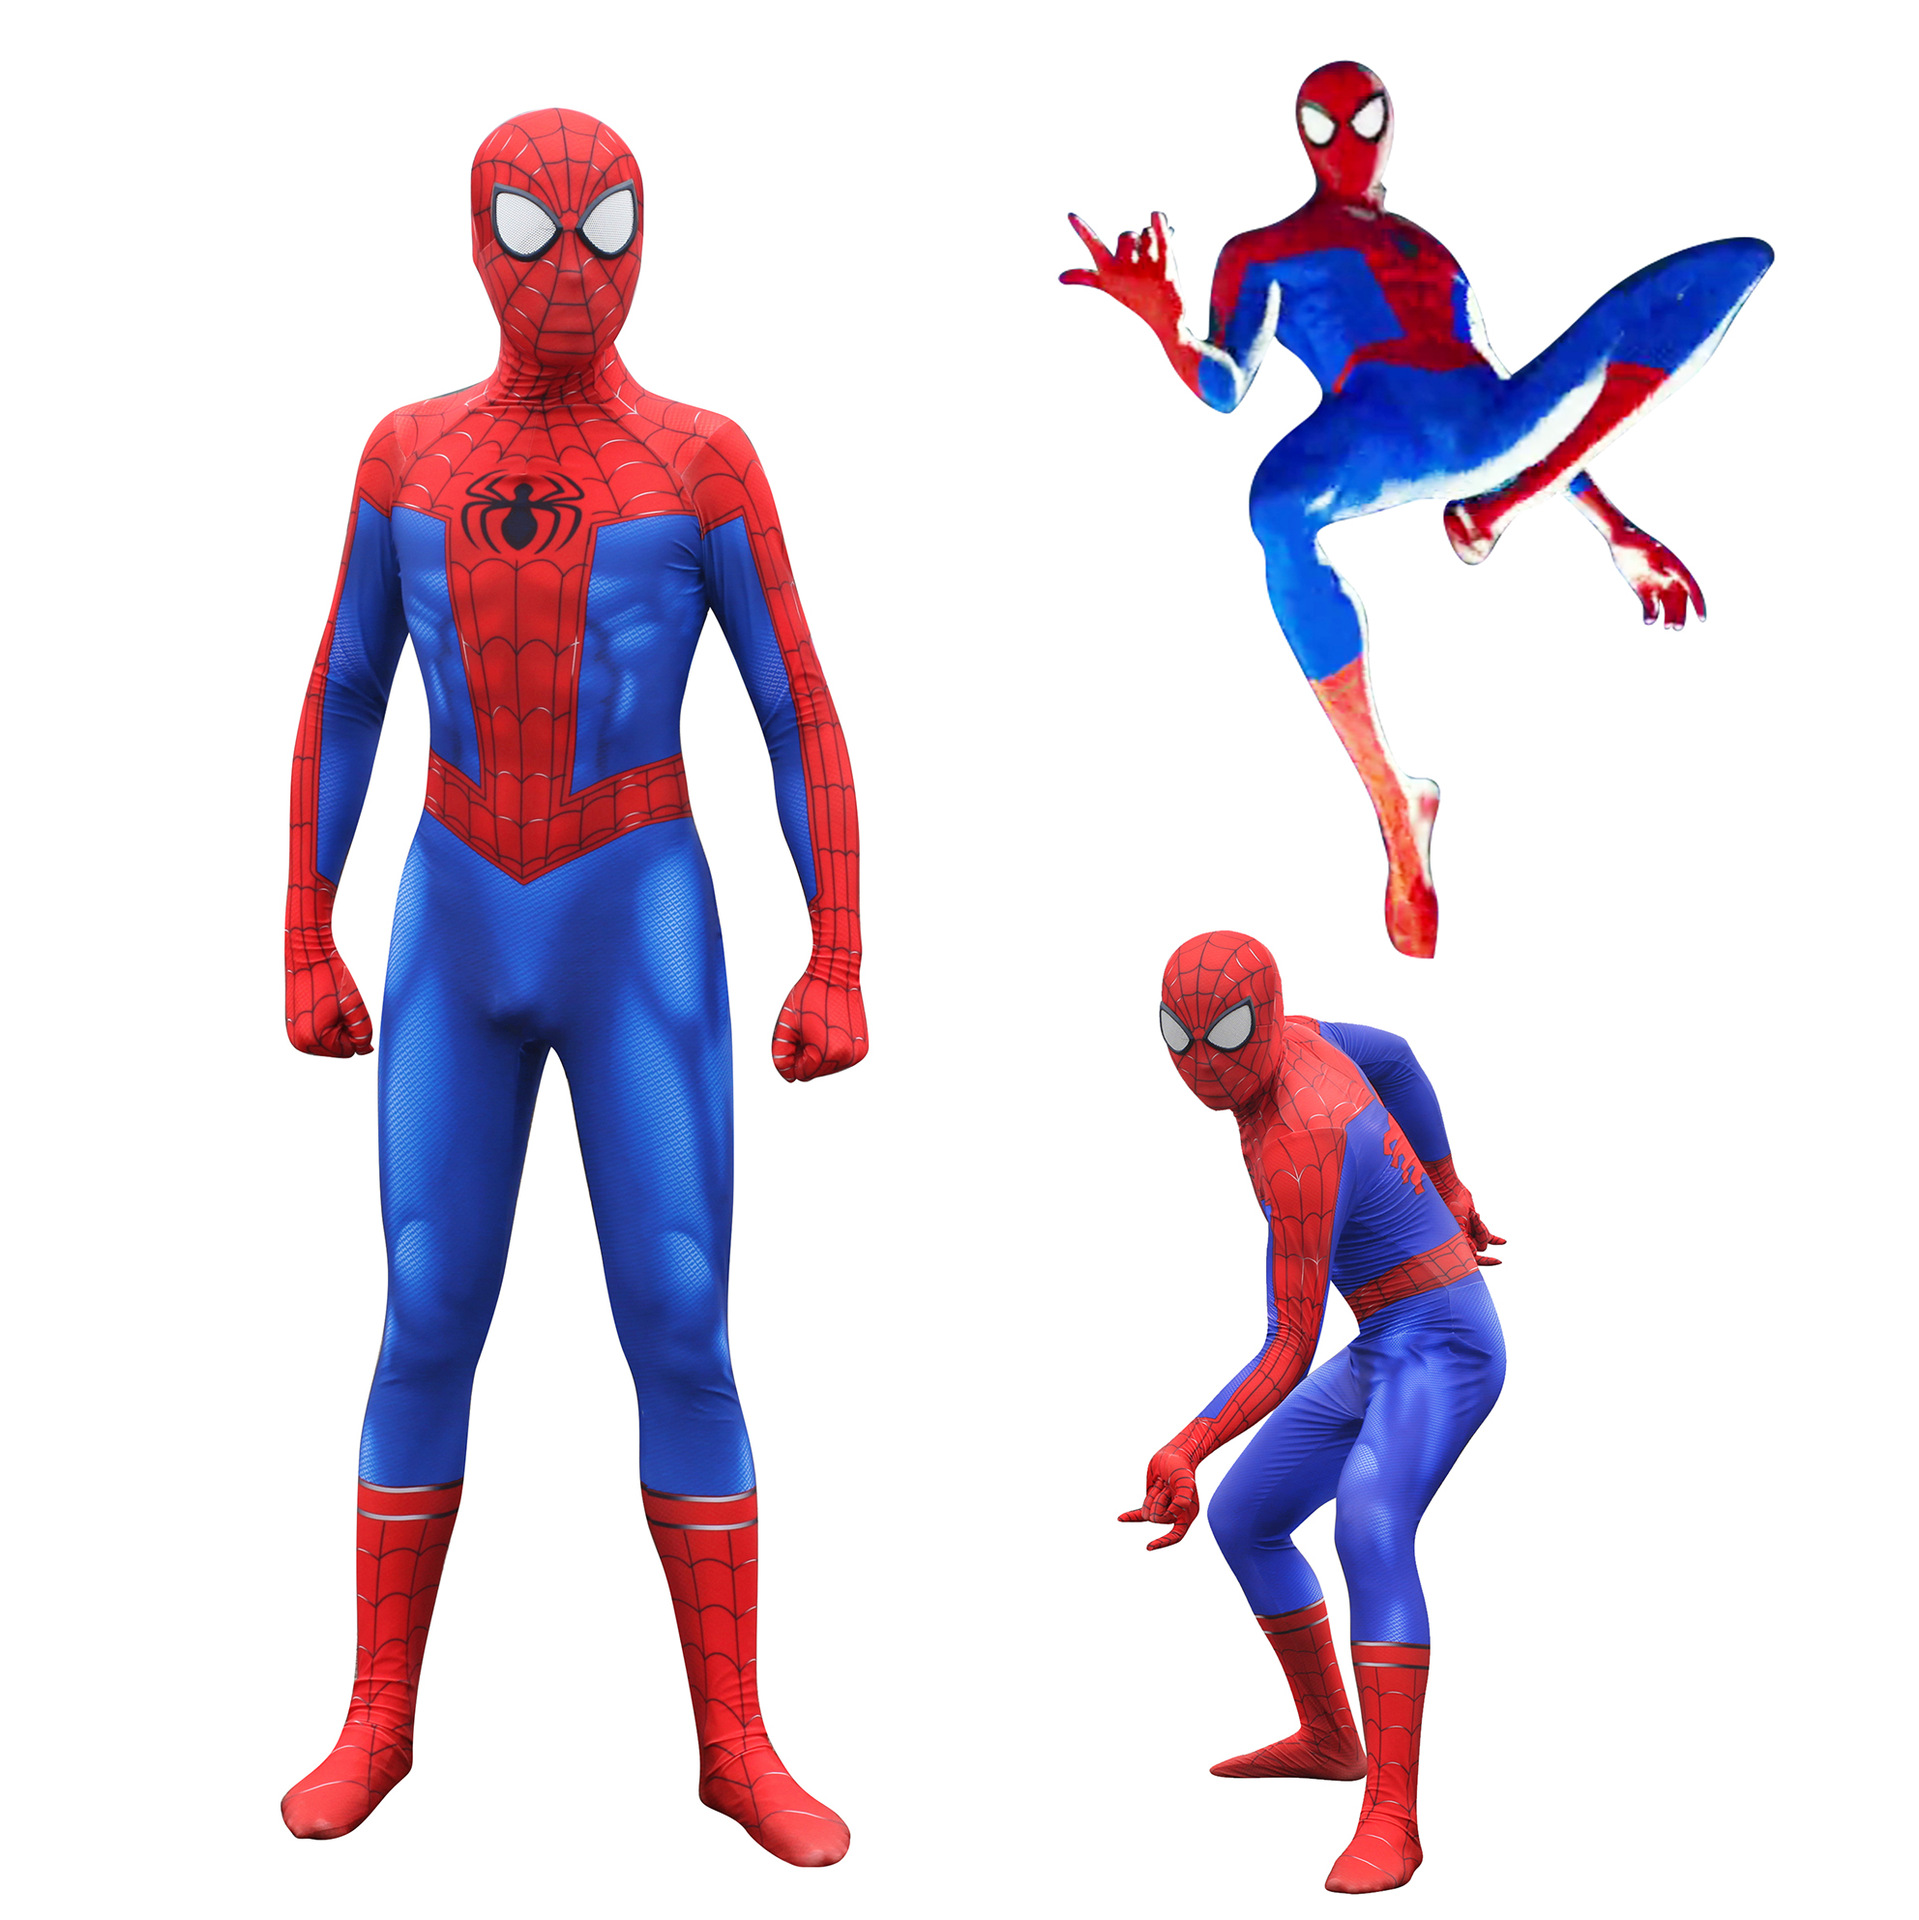 Spider Man: Into the Spider-Verse Miles Morales Cosplay Costume Superhero Zentai Adults Kids Men Boy Spiderman Suit Bodysuit